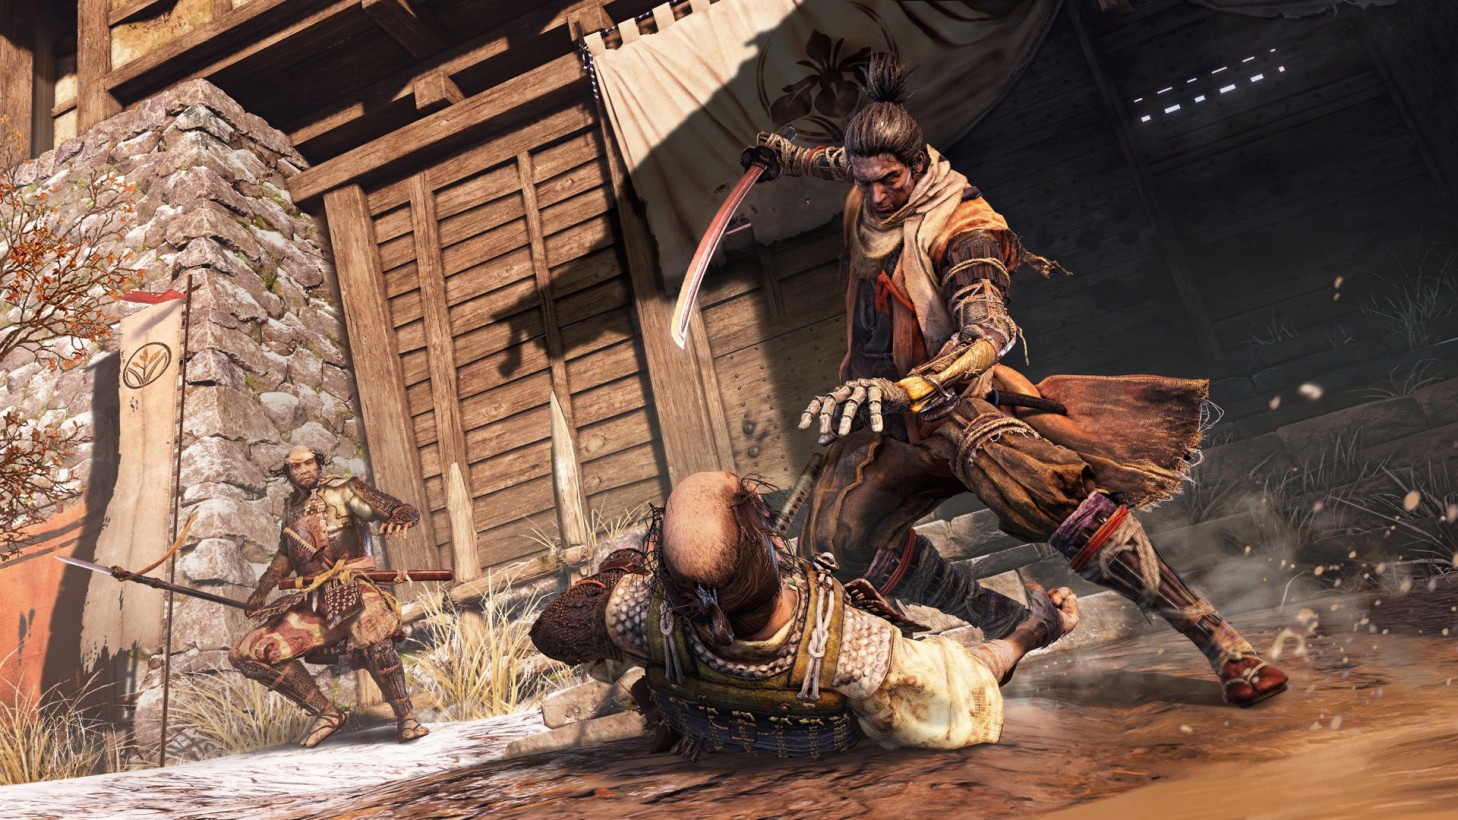 sekiro-shadows-die-twice-featured-image